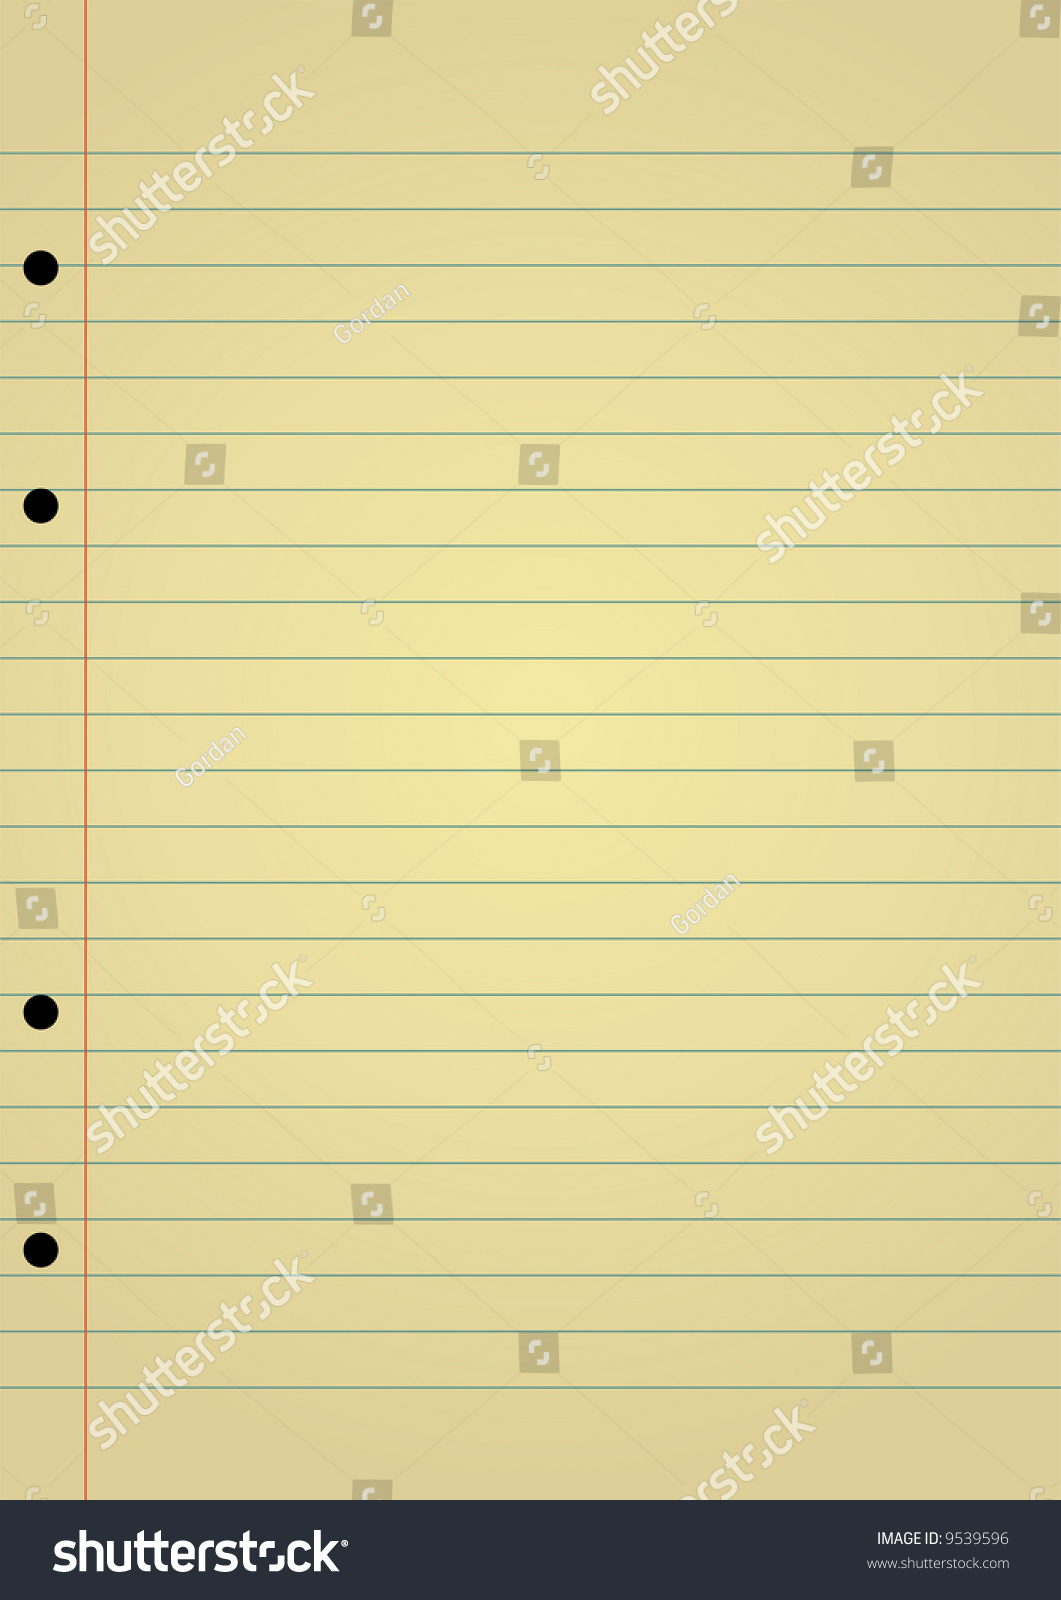 Editable Vector Background Yellow Notebook Paper With Space For – Yellow Notebook Paper Background